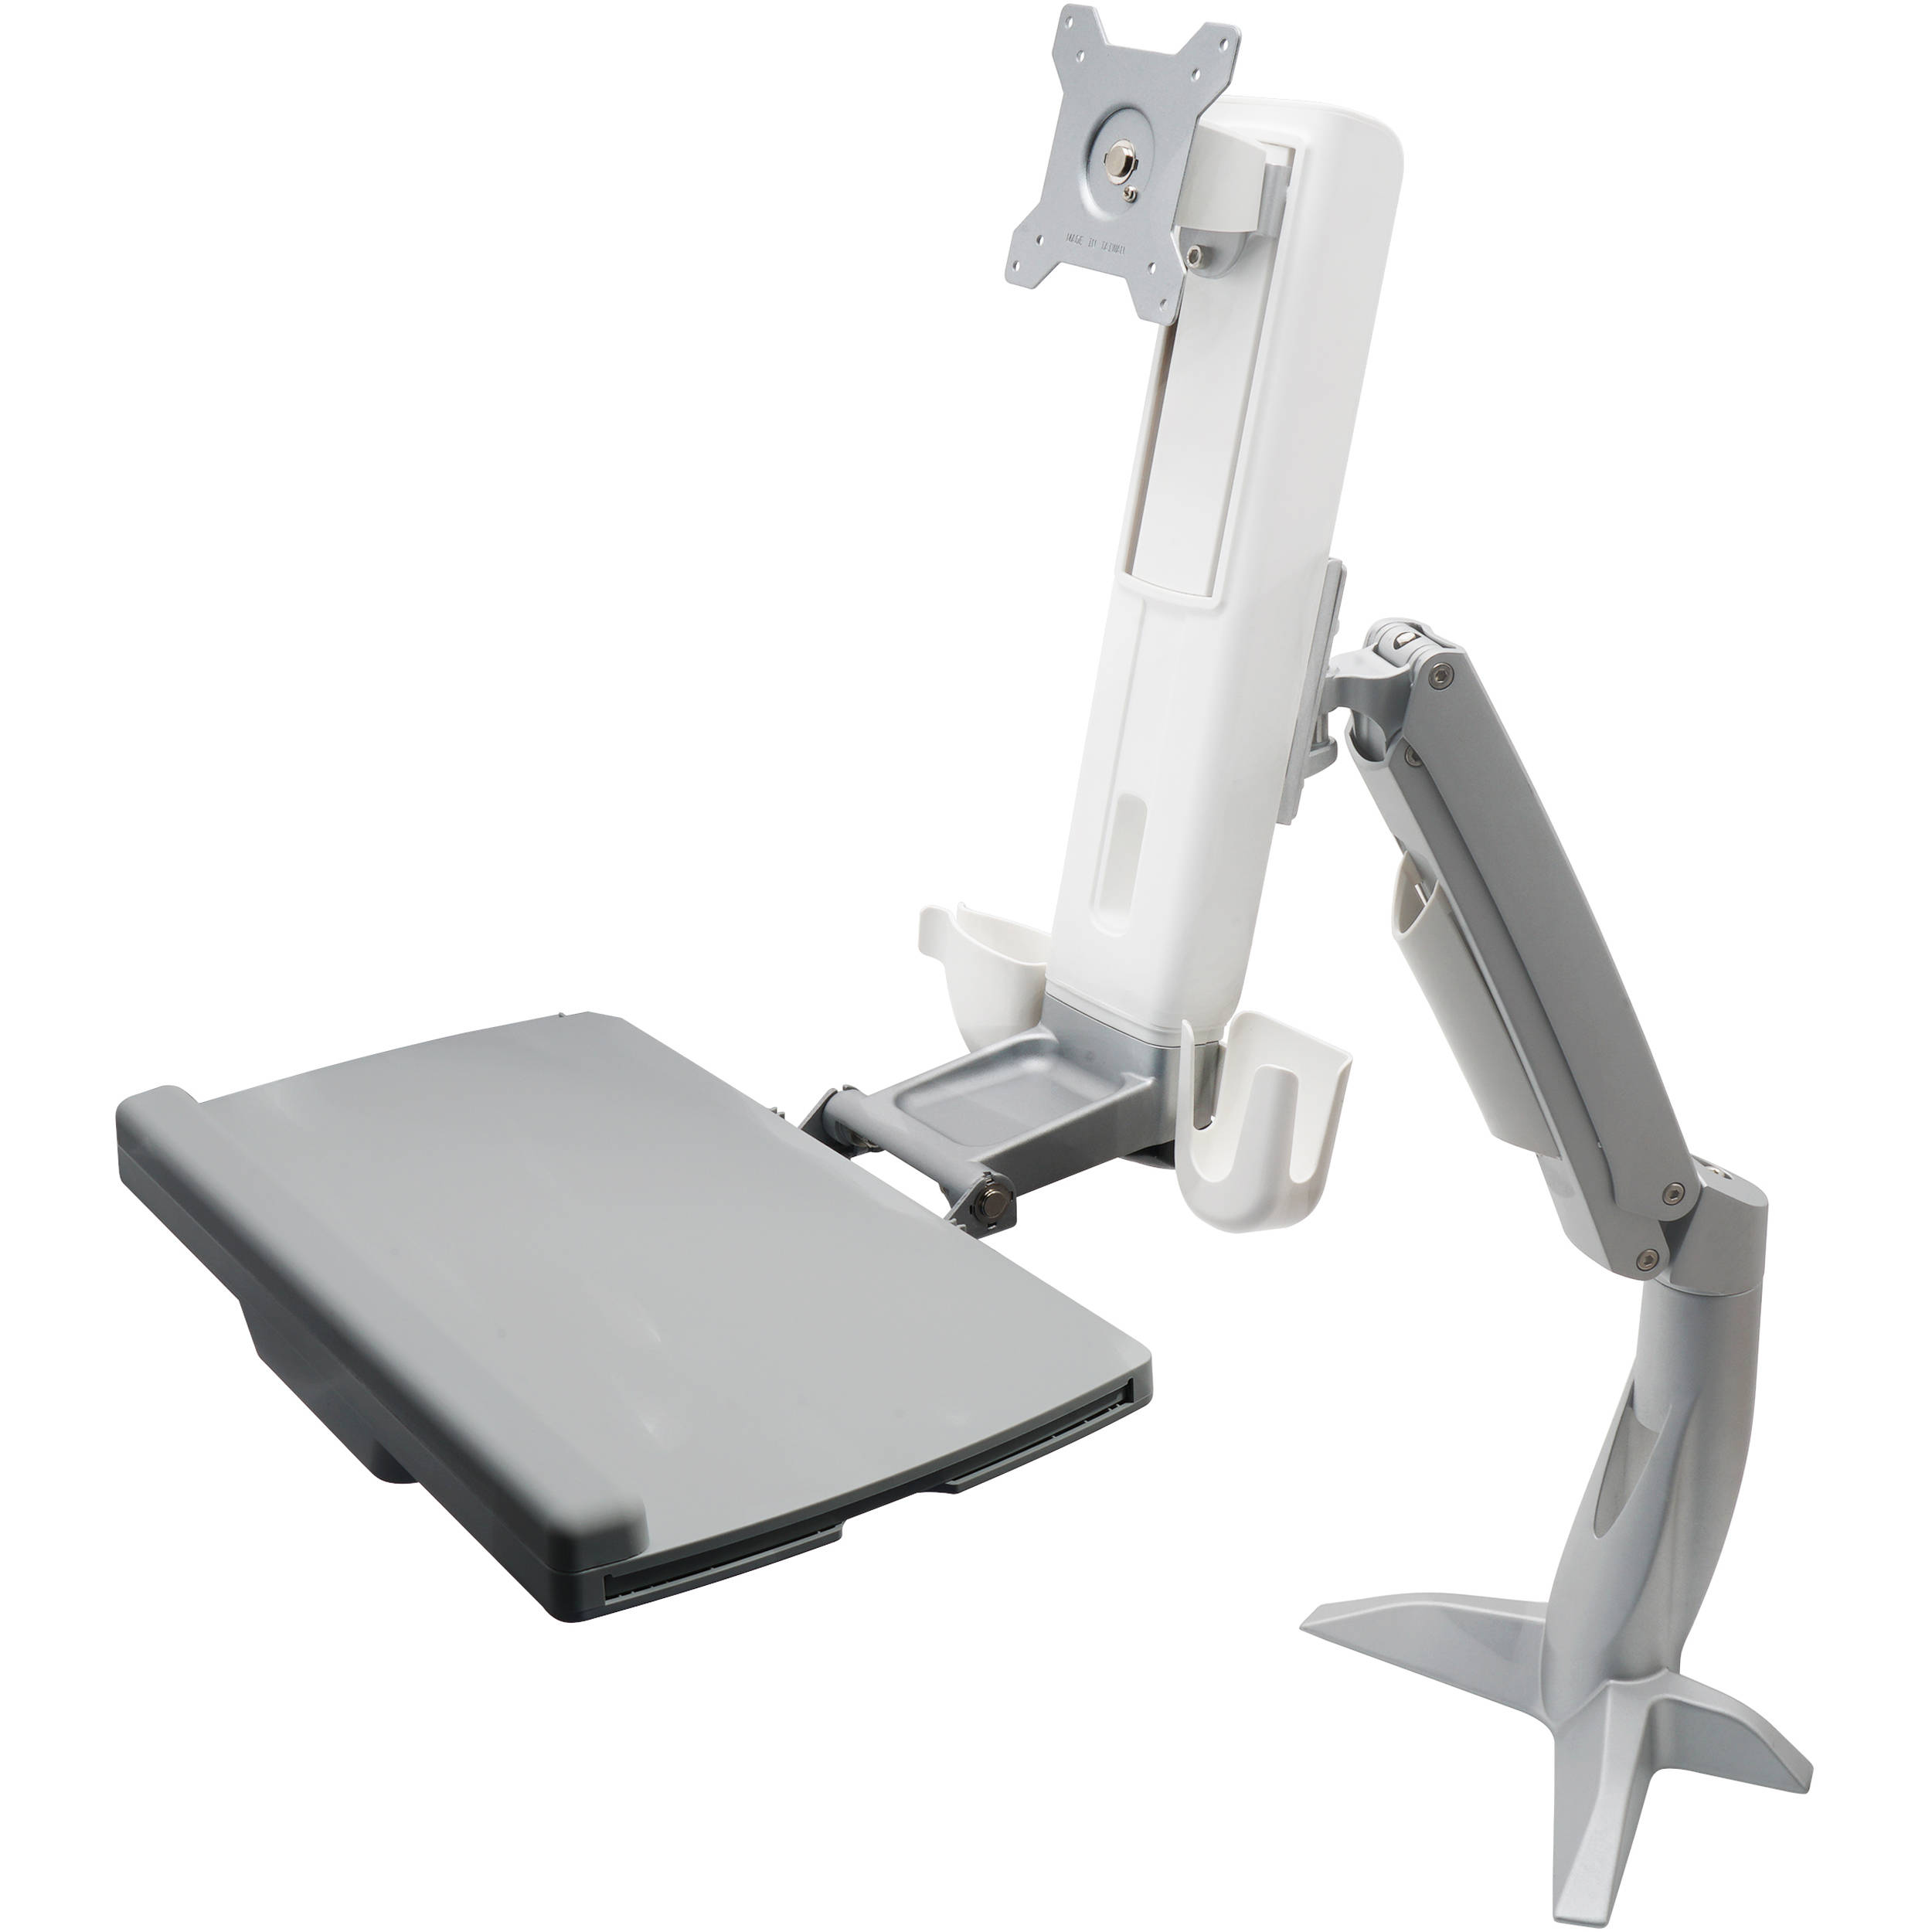 Dyconn Desk Mounted Sit/Stand Workstation Mount With Foldable Keyboard Tray  And Retractable Mouse